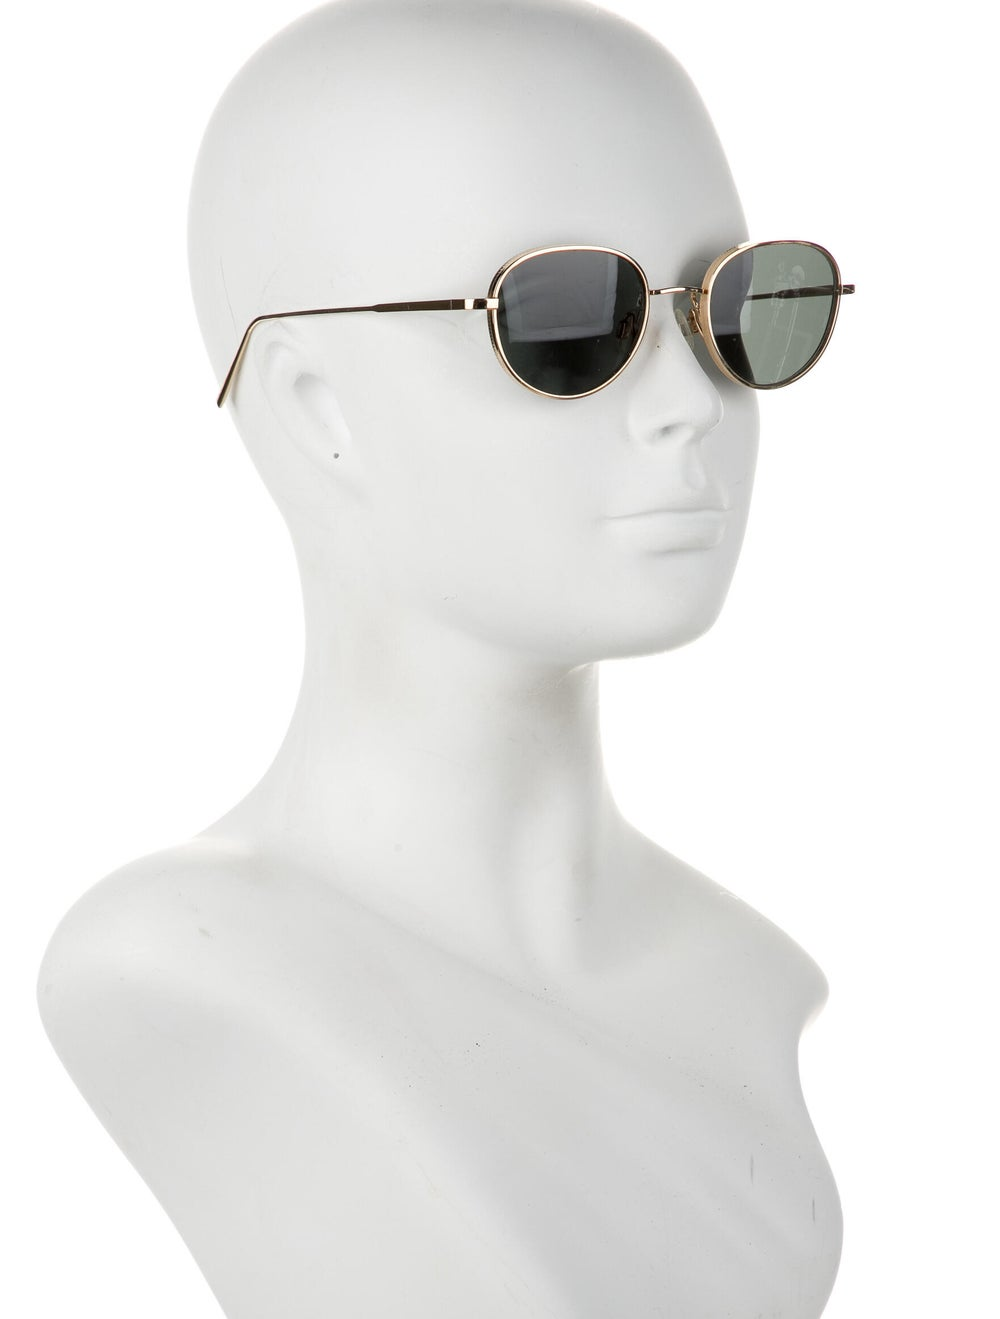 Warby Parker Round Tinted Sunglasses Gold - image 4